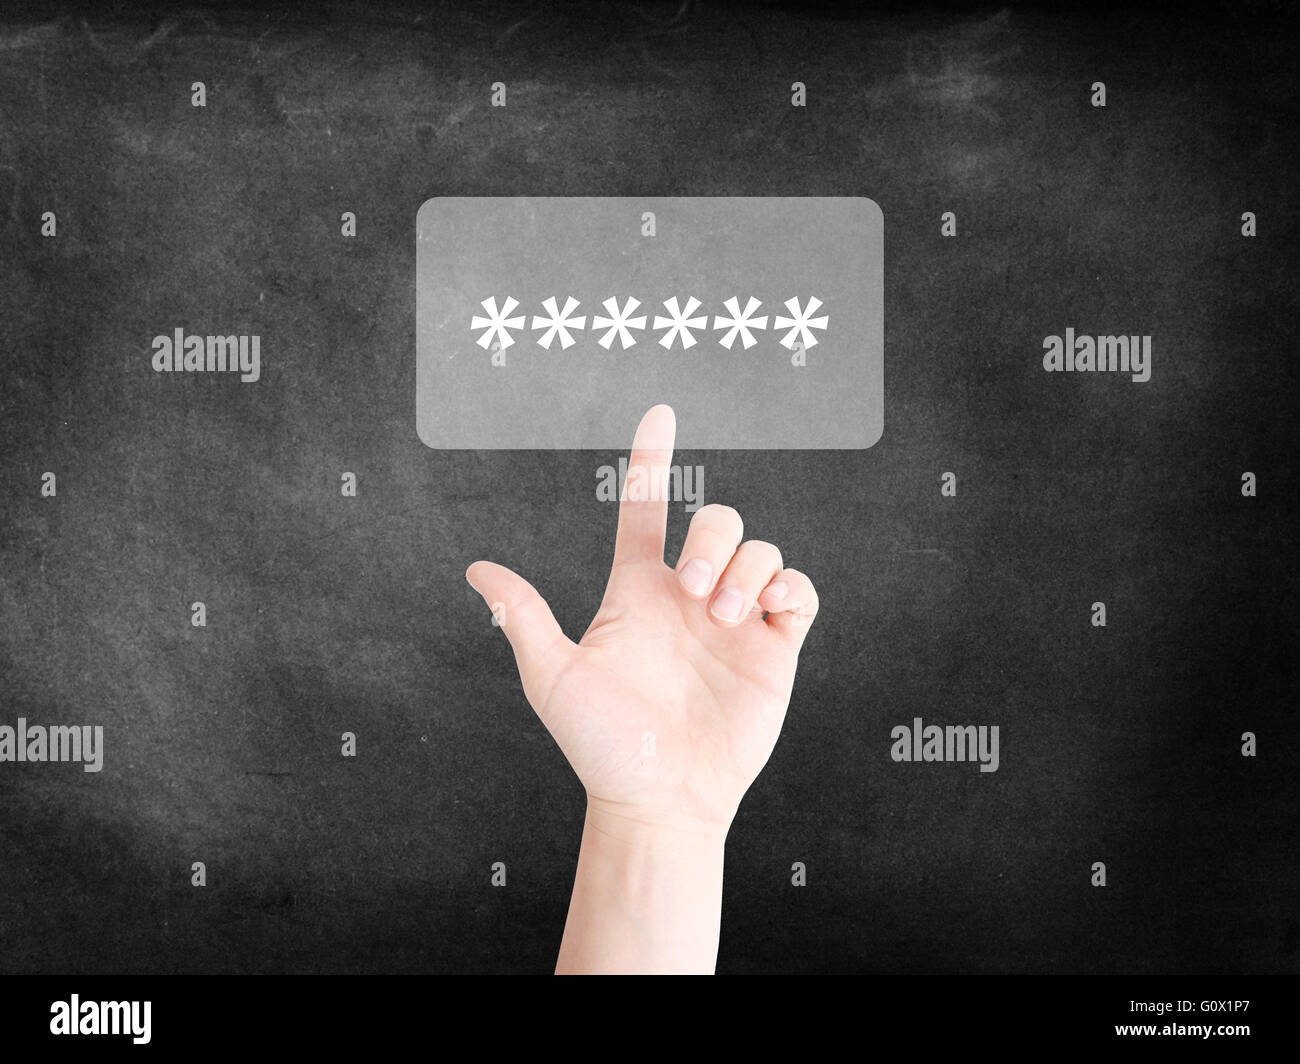 Finger tapping on an icon to symbolize Password - Stock Image